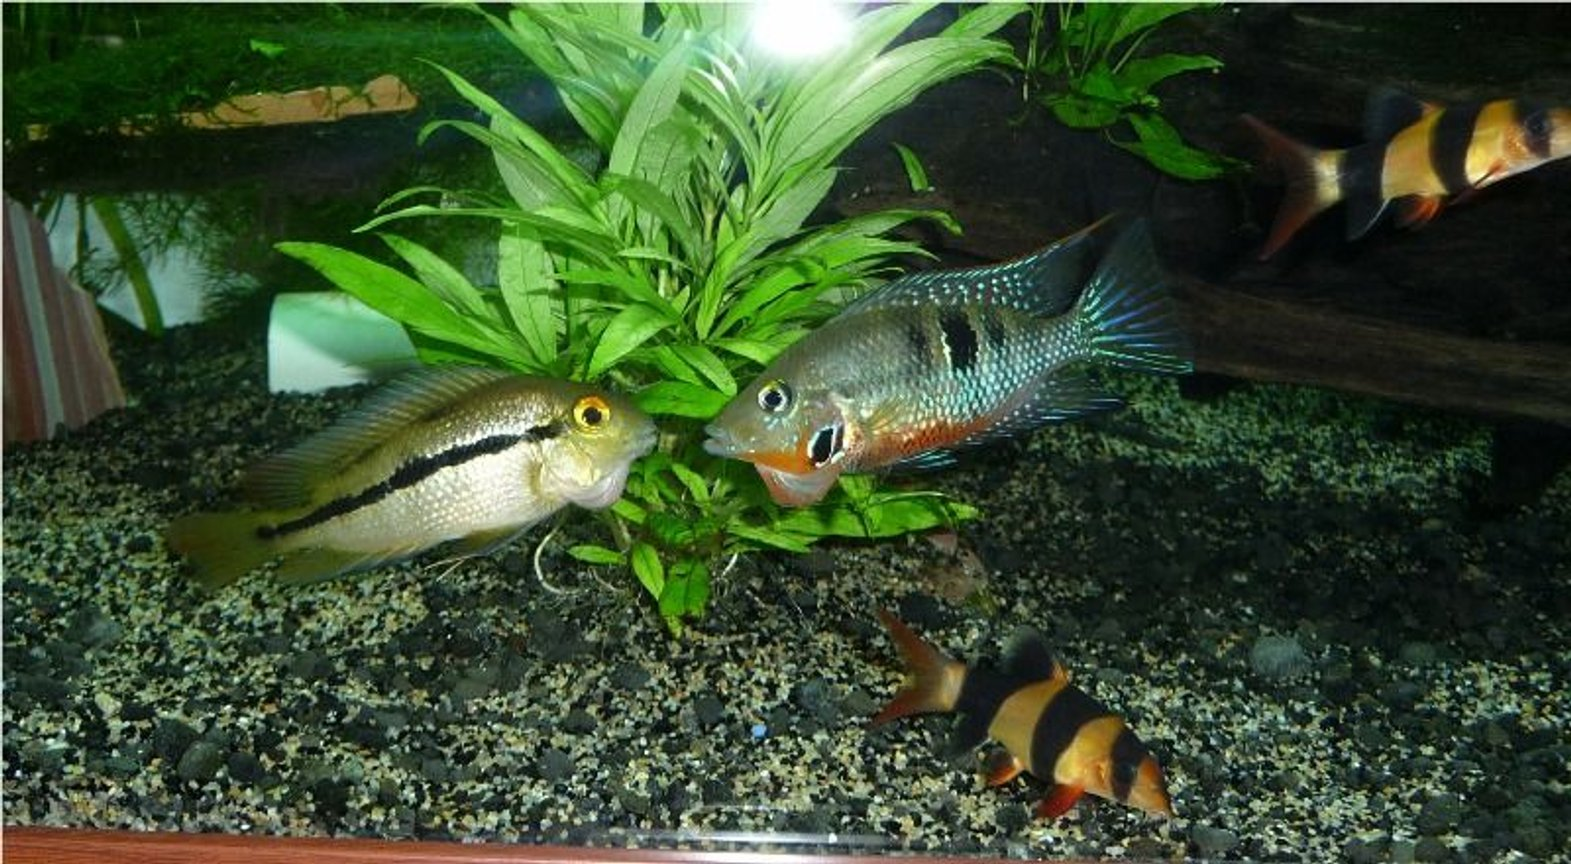 freshwater fish - thorichthys meeki - firemouth cichlid stocking in 85 gallons tank - nicaraguensis with aggresive firemouth I got rid off